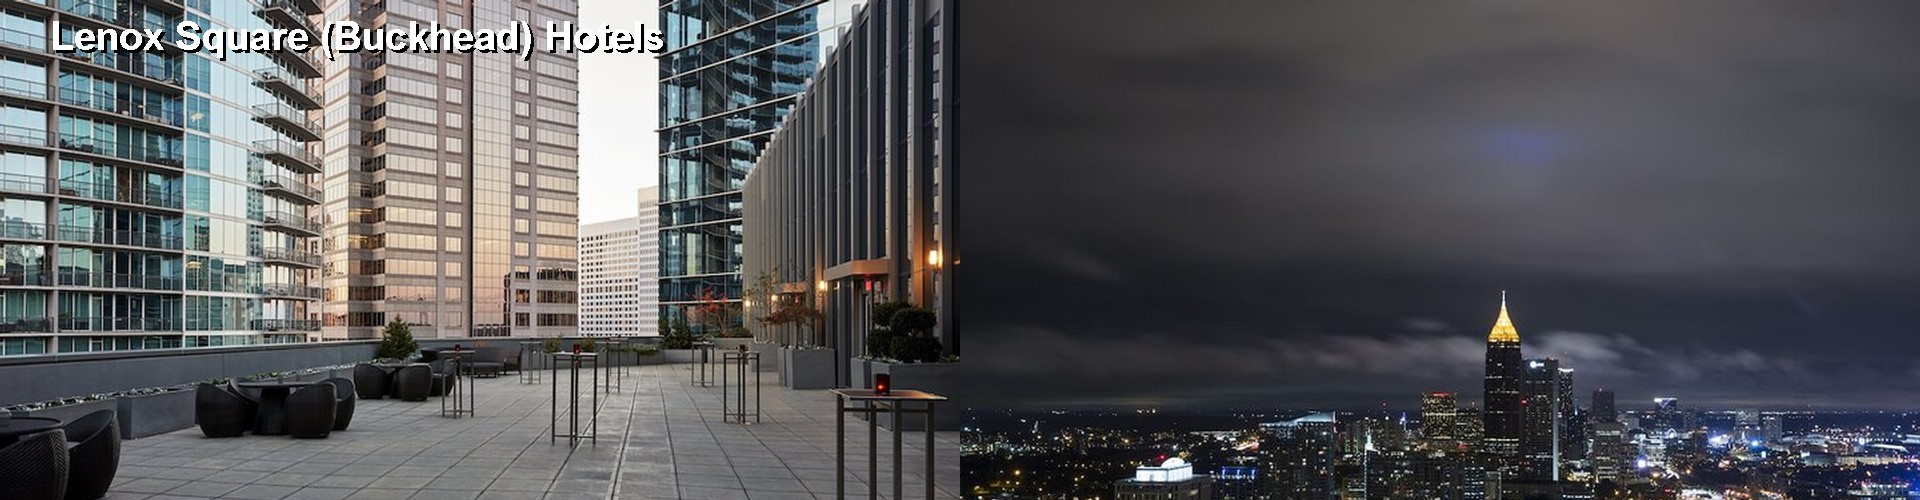 $37+ Hotels Near Lenox Square (Buckhead) in Atlanta GA